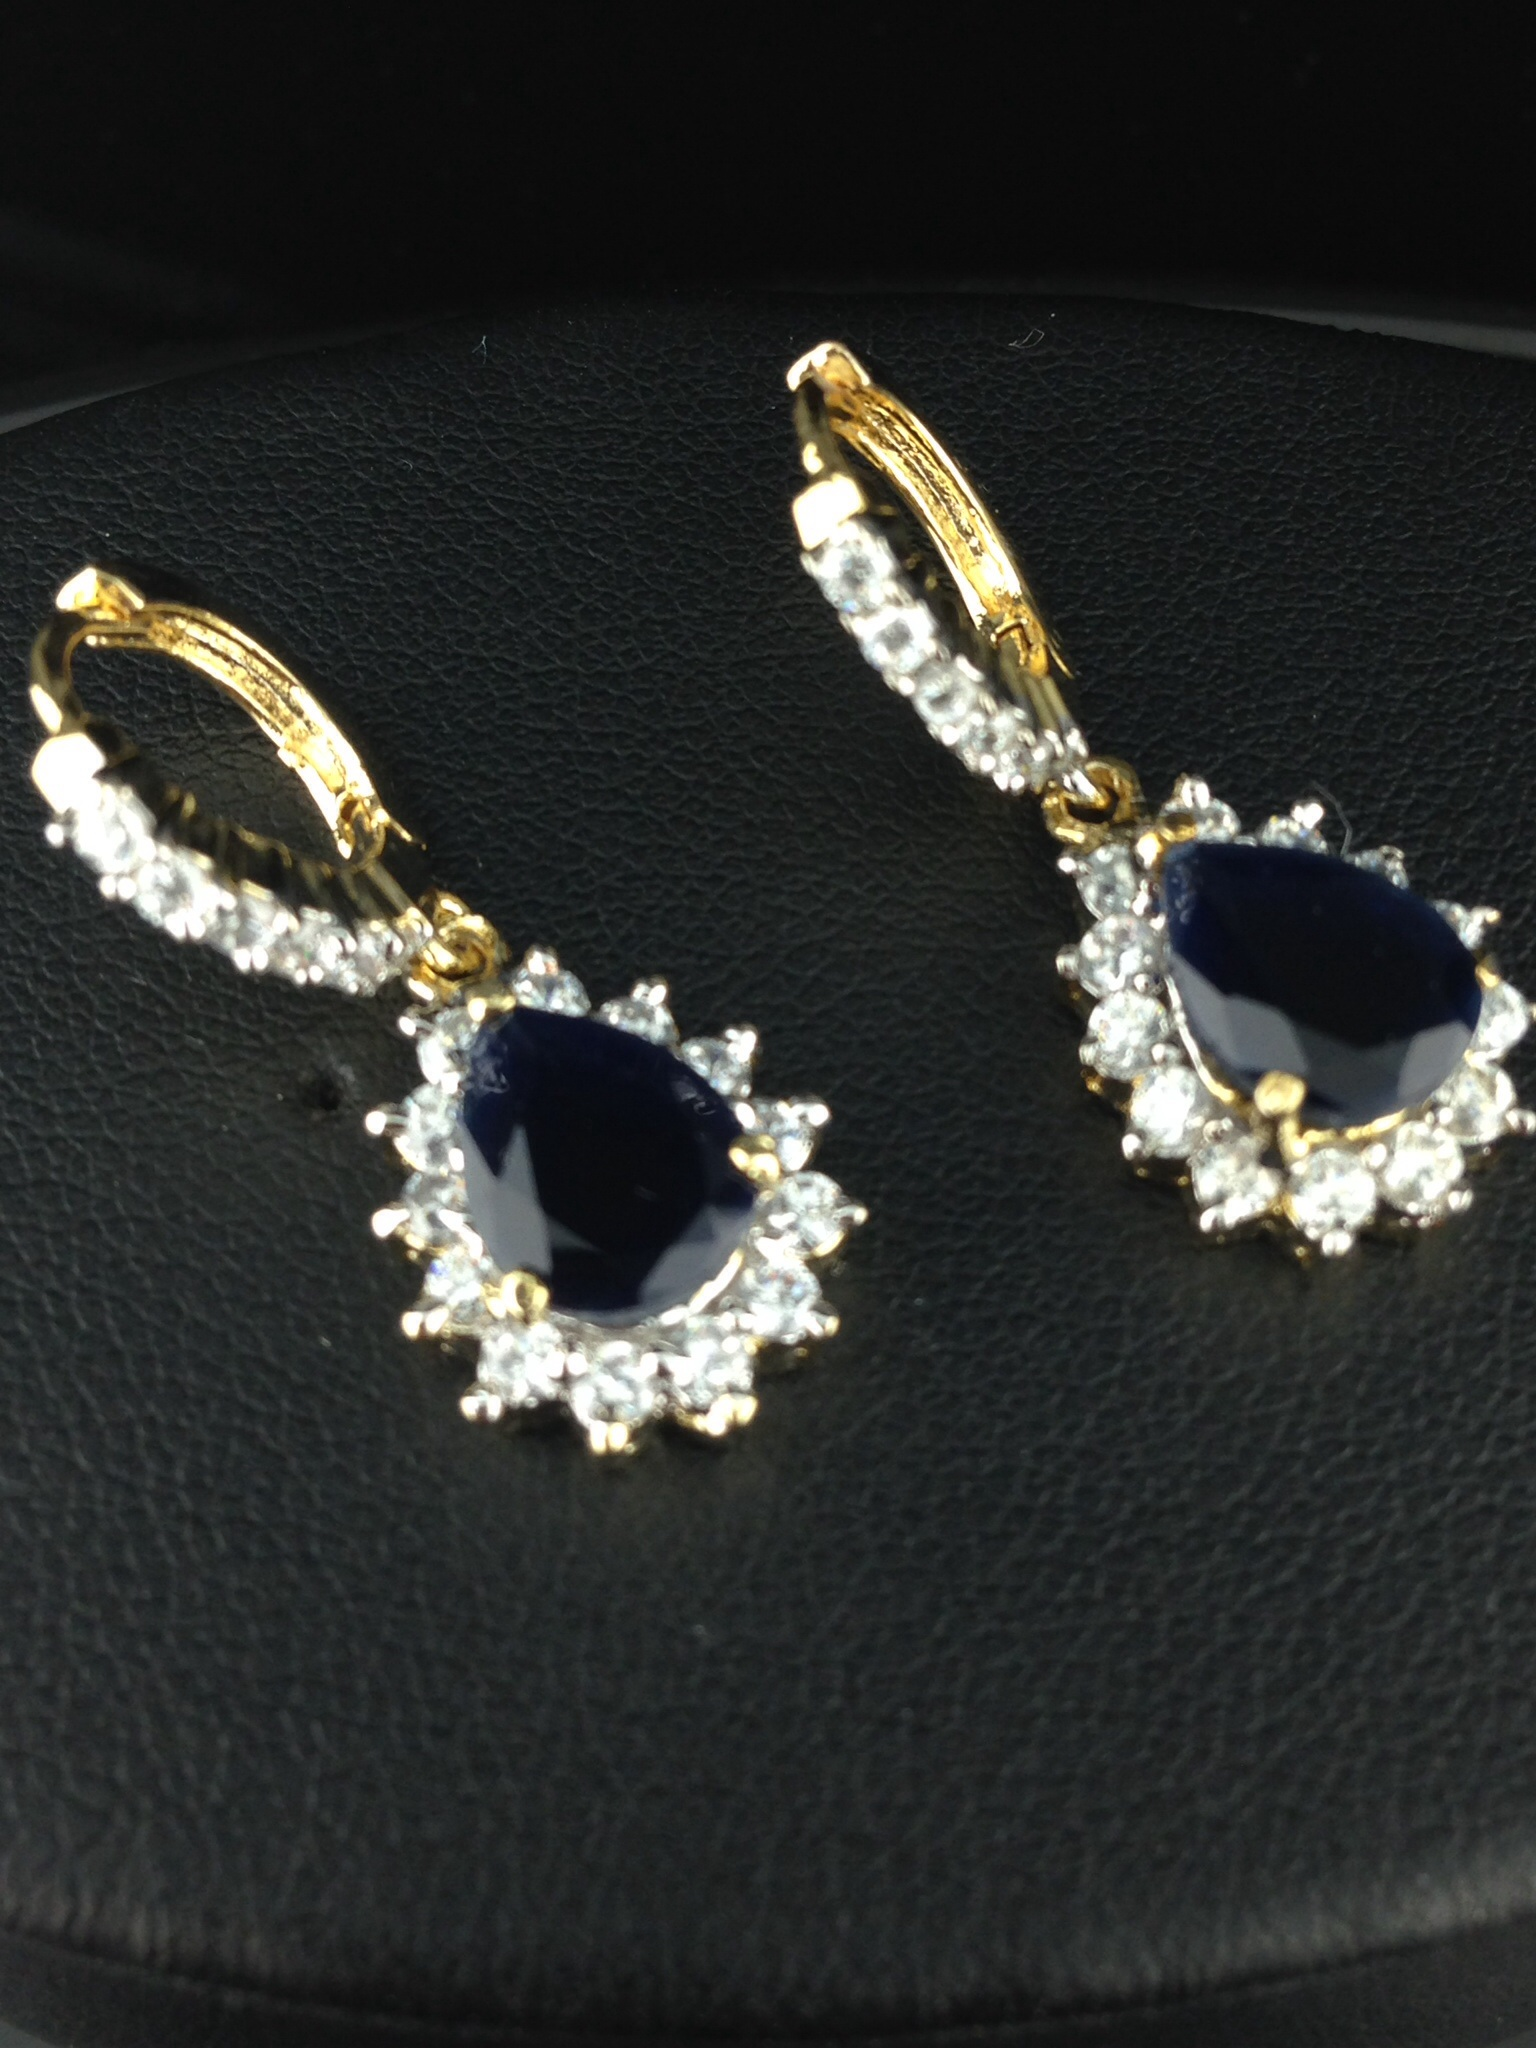 American Diamond Earring with Black Onyx